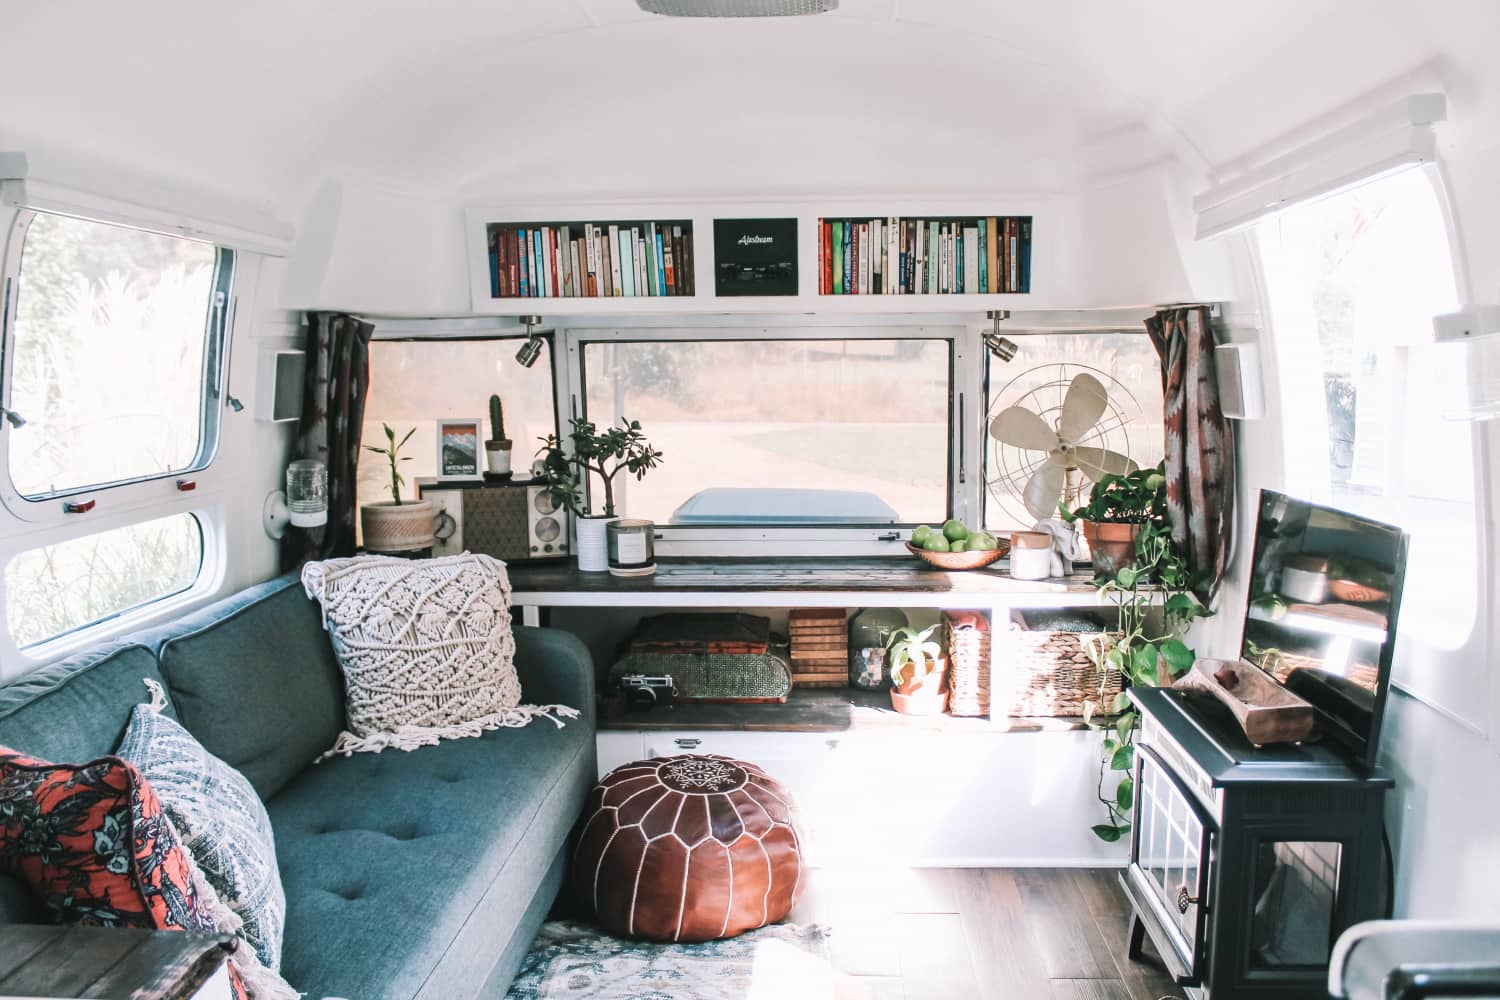 The 10 Best-Designed Tiny Houses We Saw on Instagram This Year